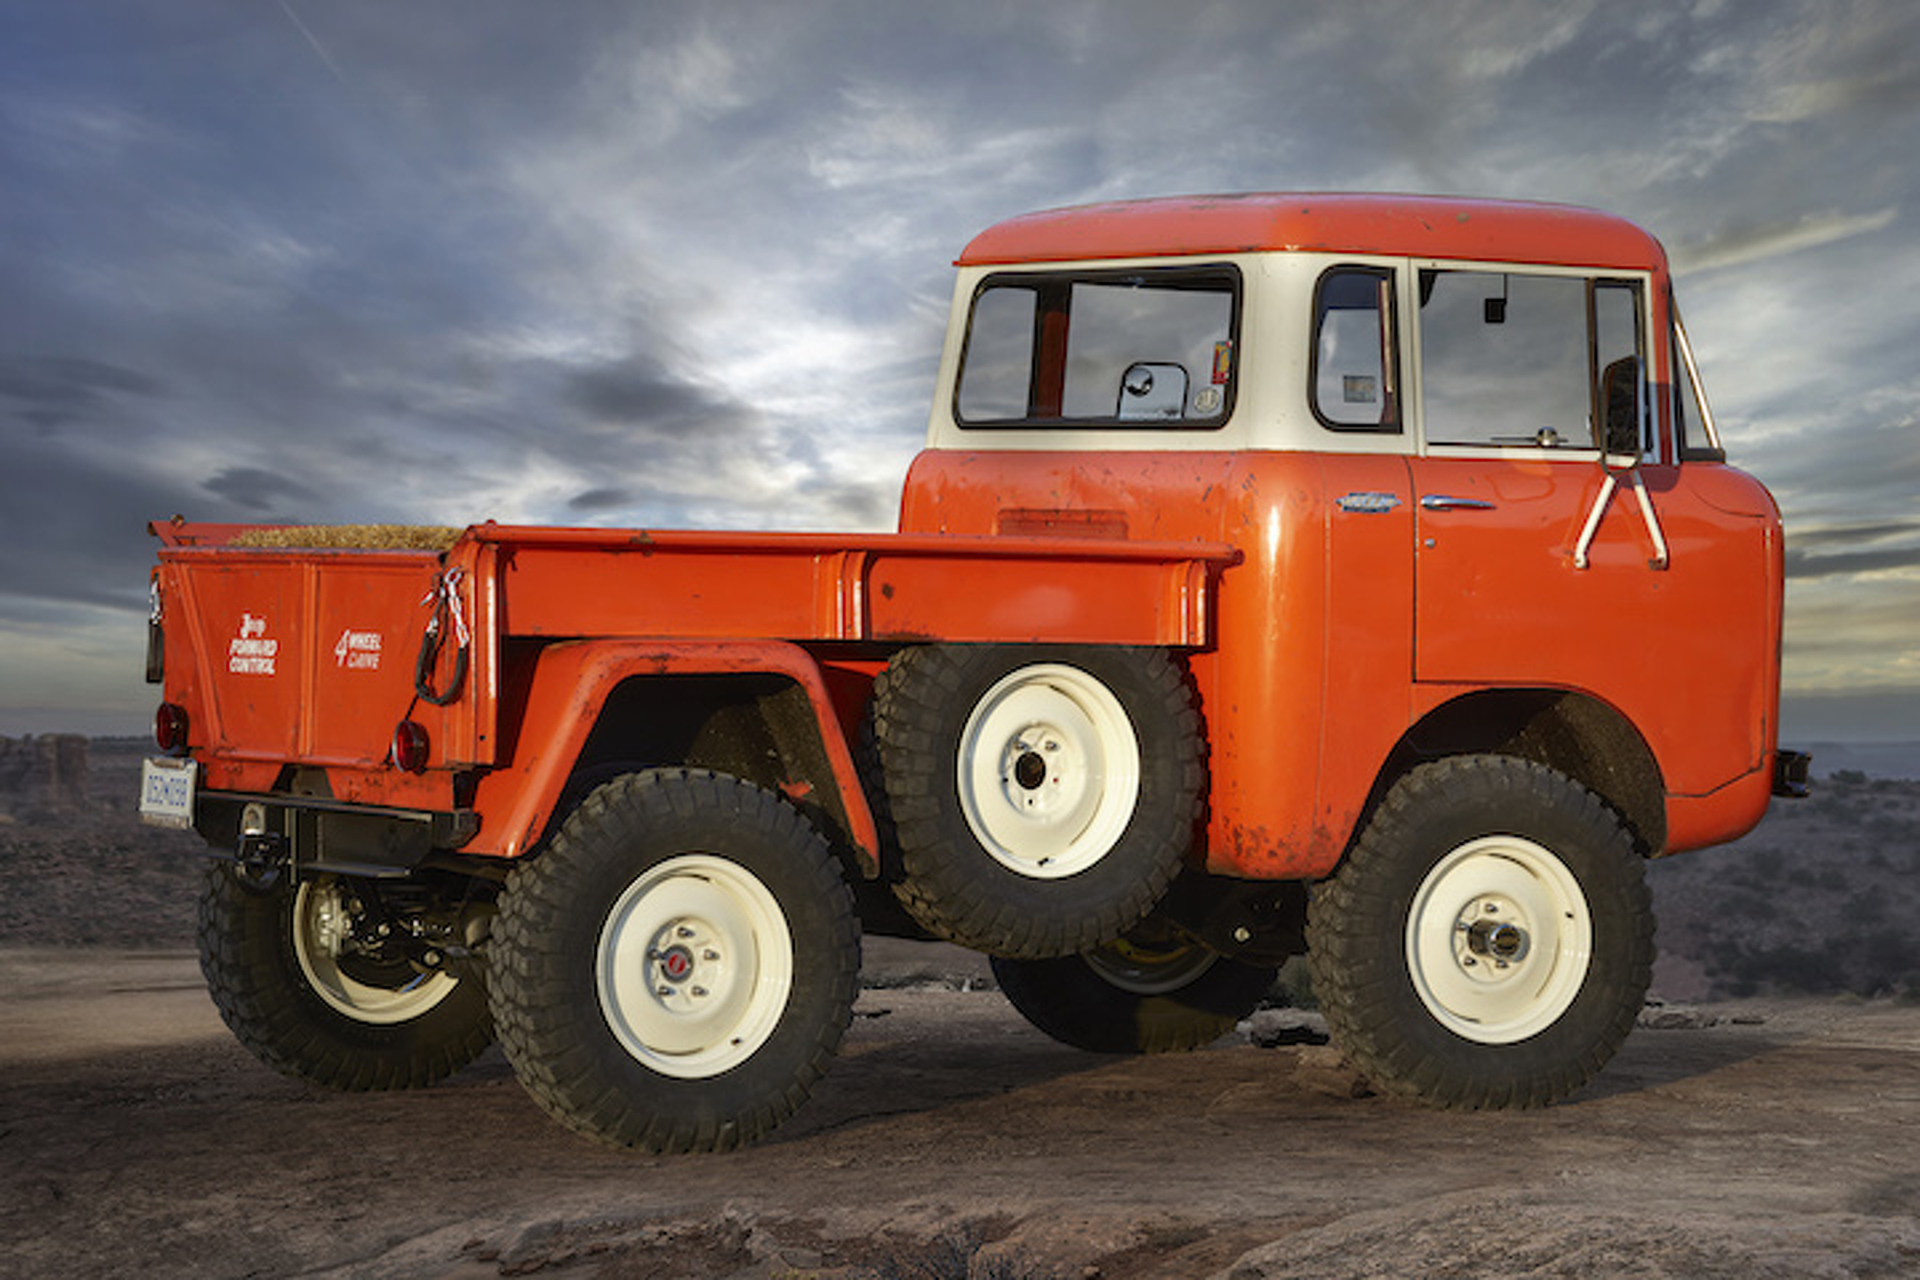 Forget the Hellcat, This Jeep FC 150 is the Best Moab Concept